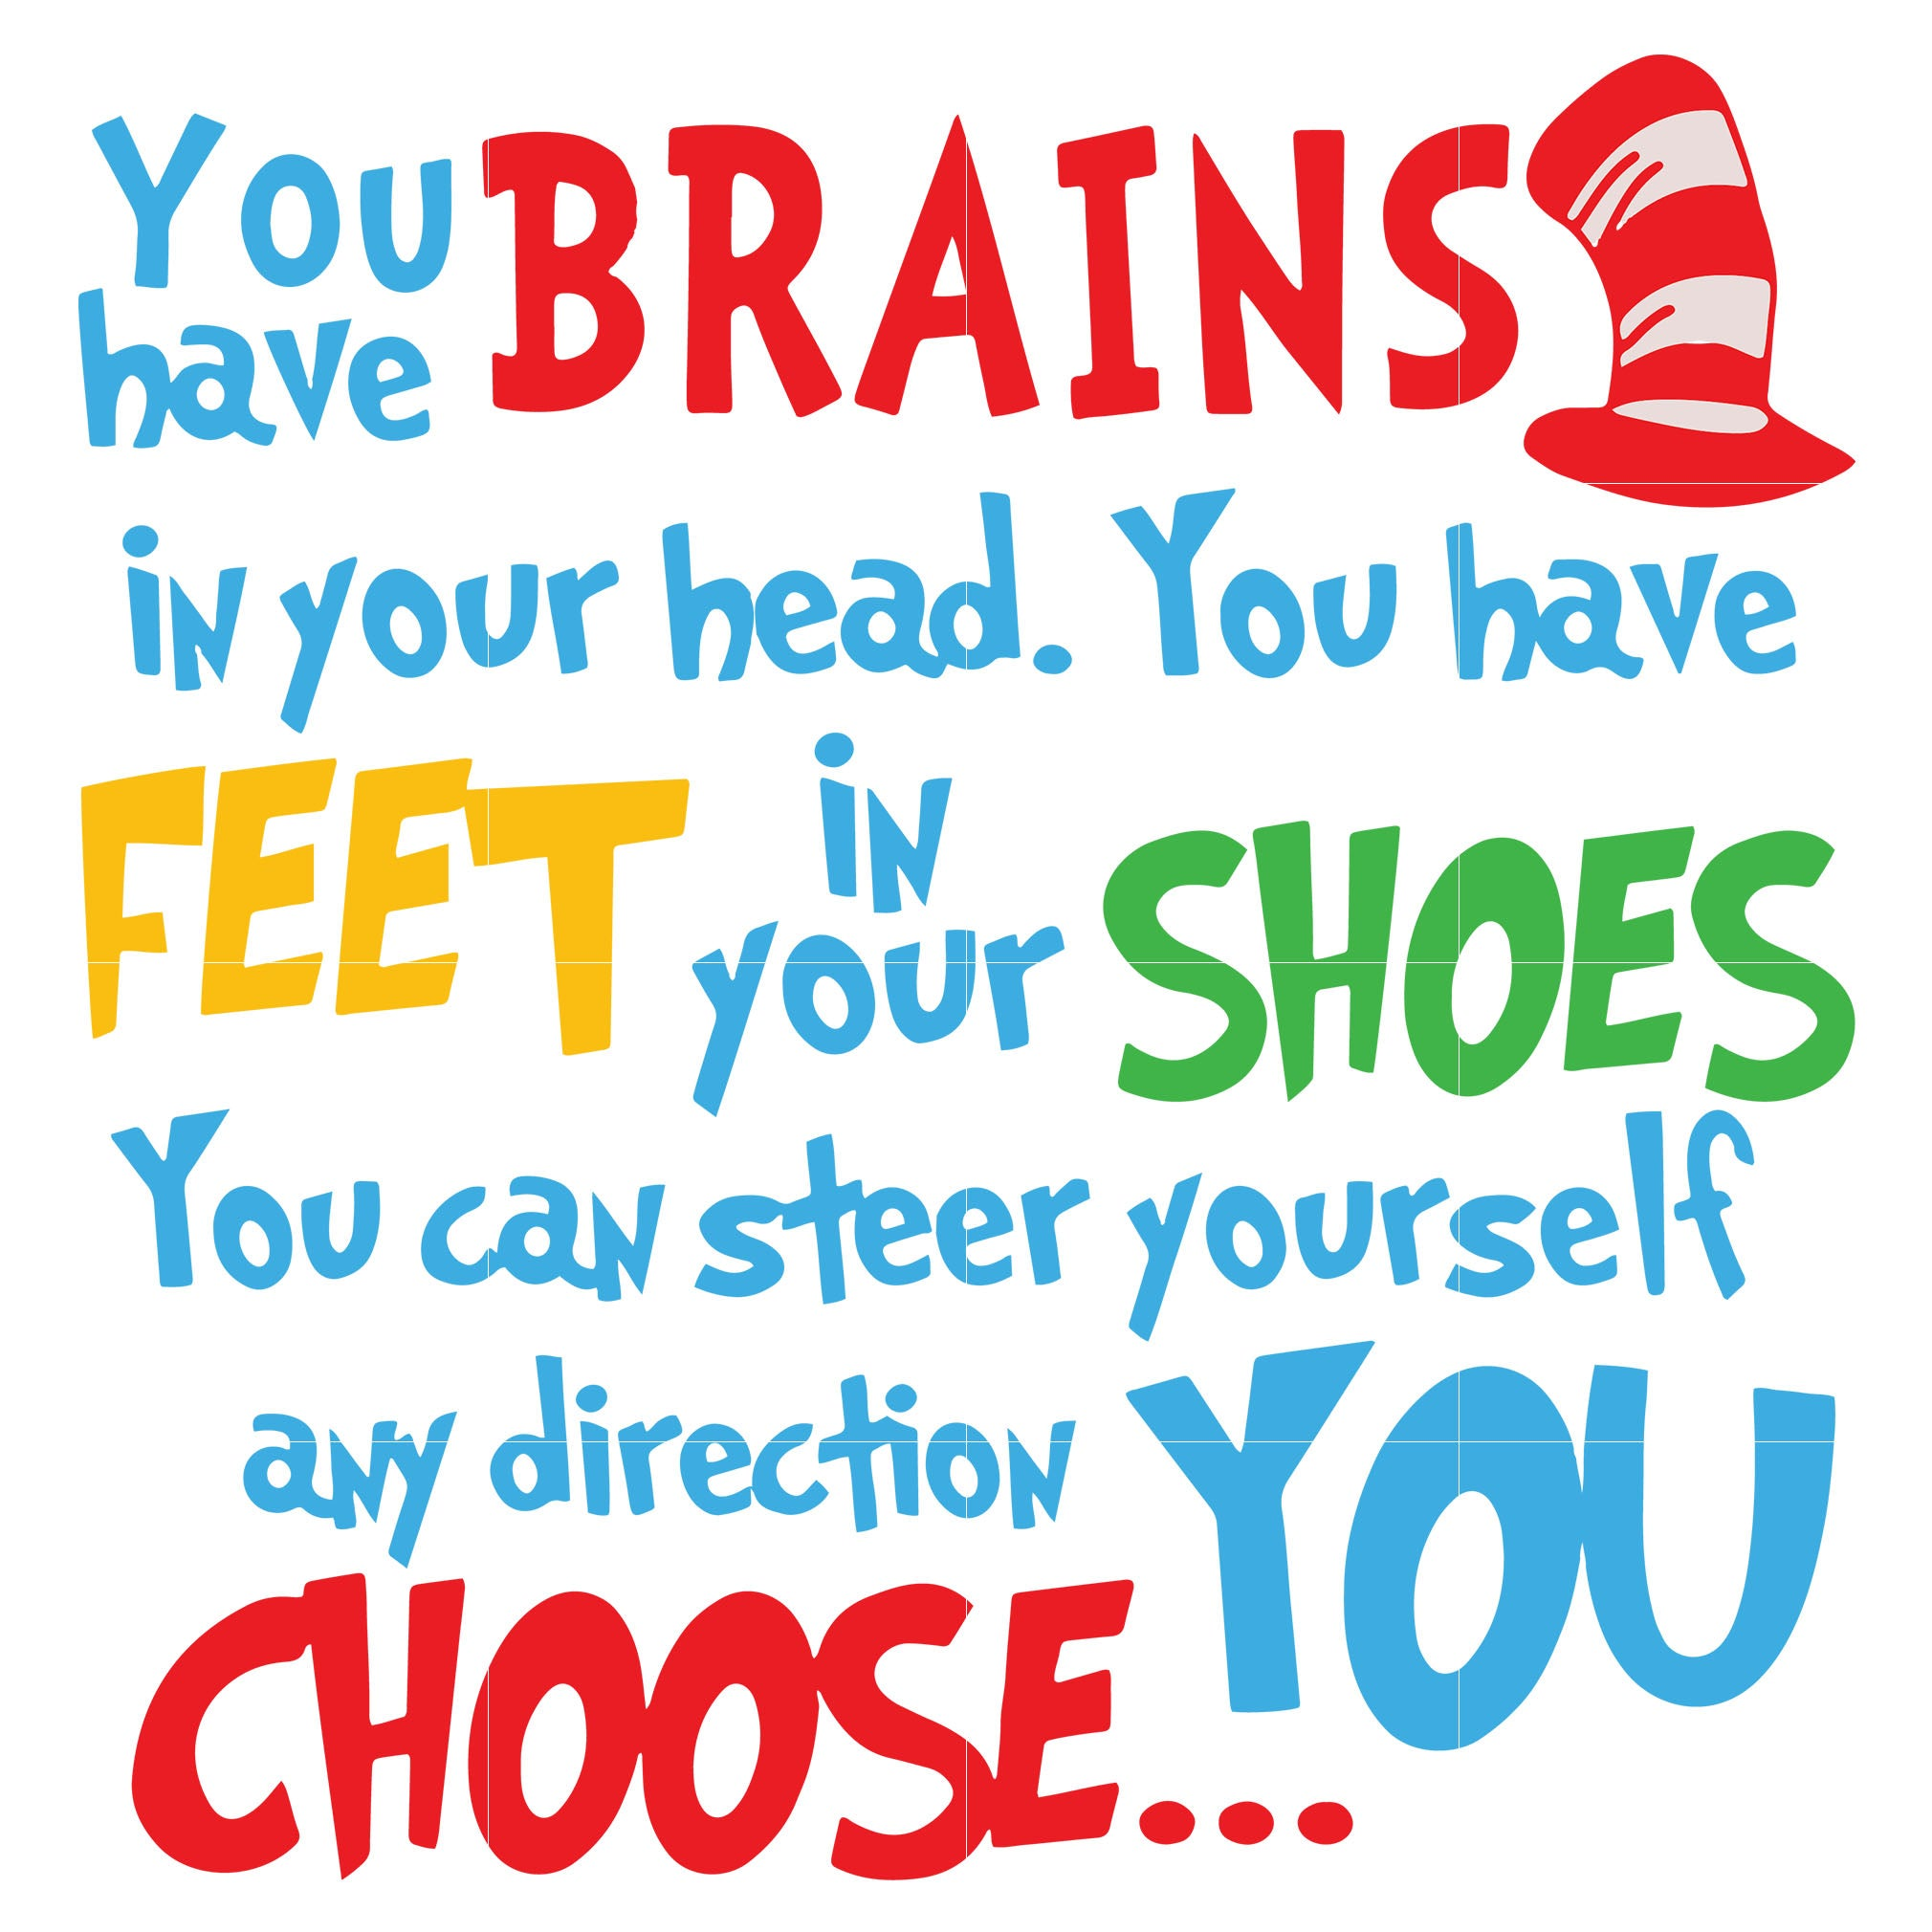 You have brains in your head you have feet in your shoes you can steer yourself any direction you choose, dr seuss svg, dr seuss quotes digital file